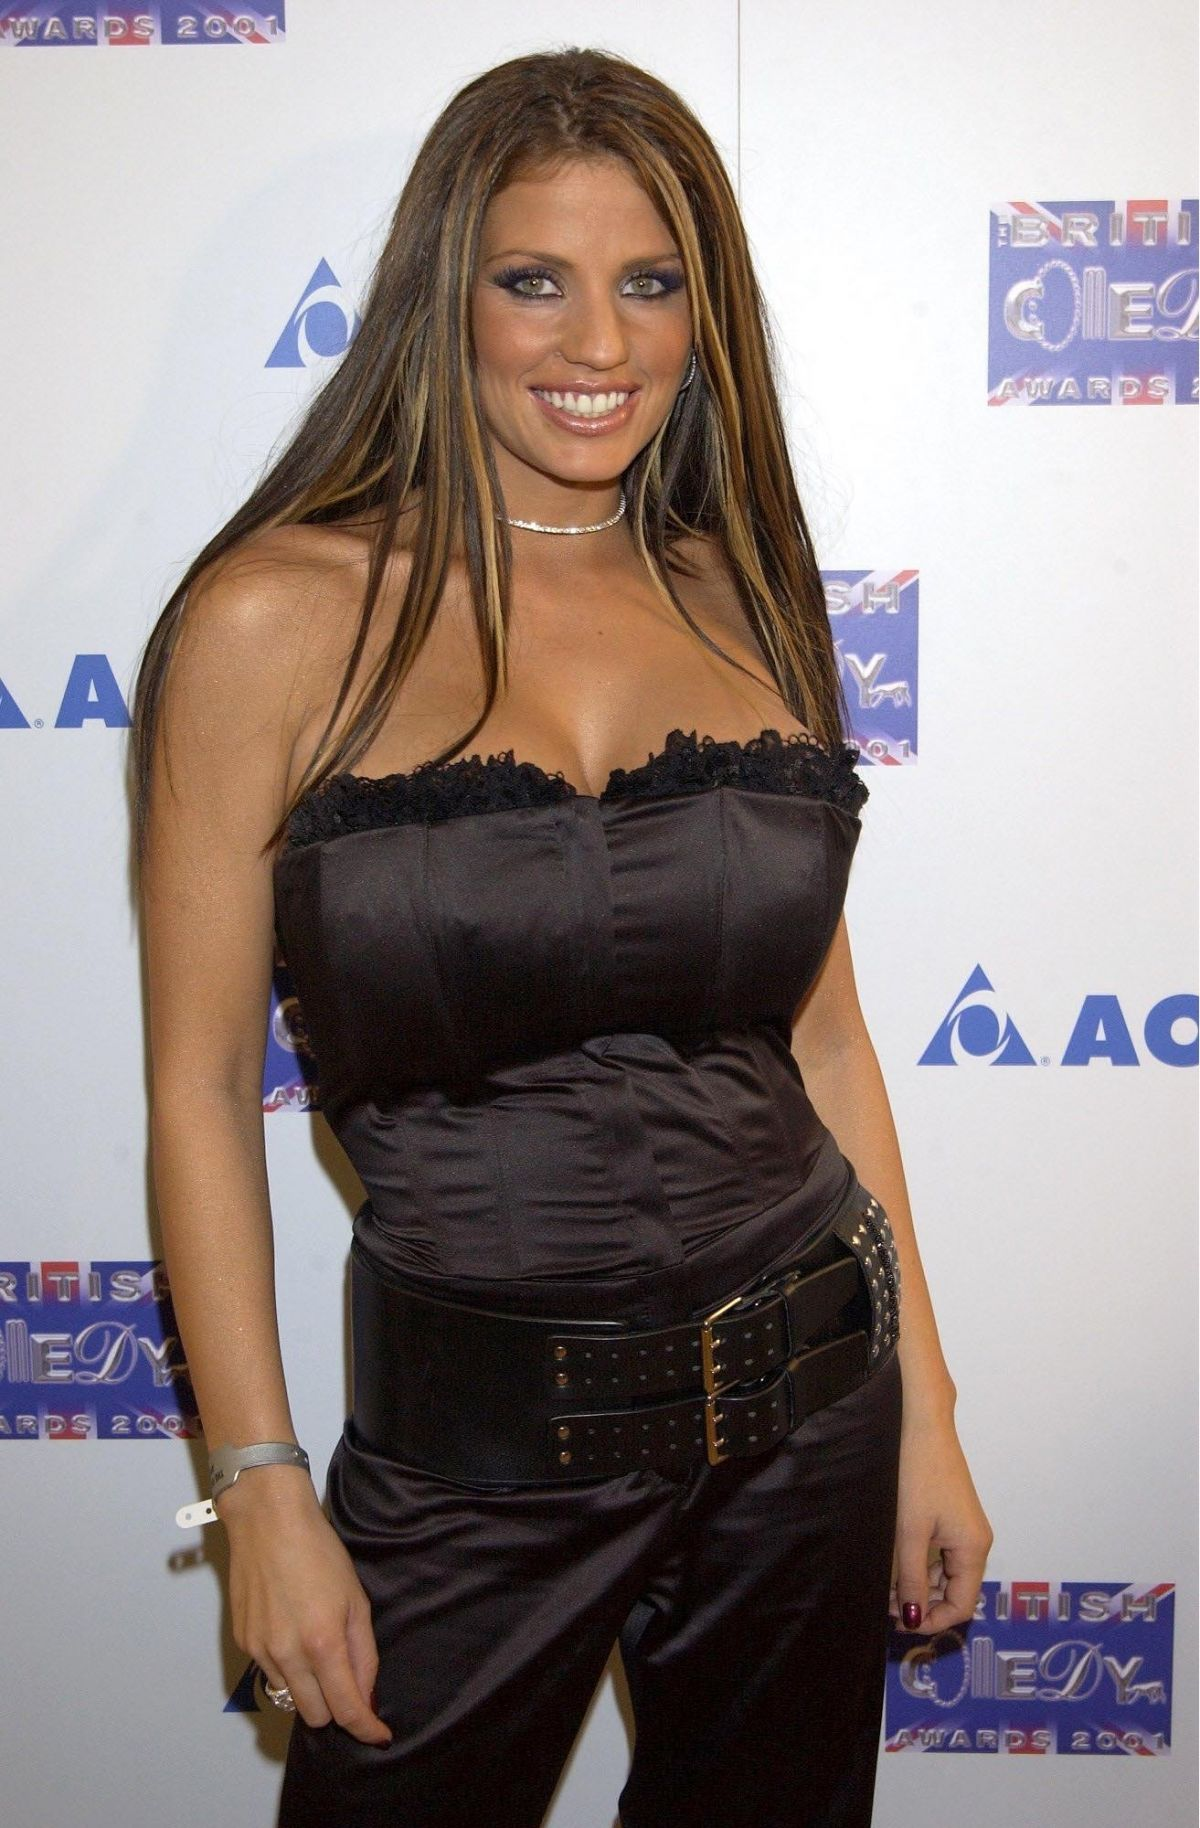 katie price - photo #41